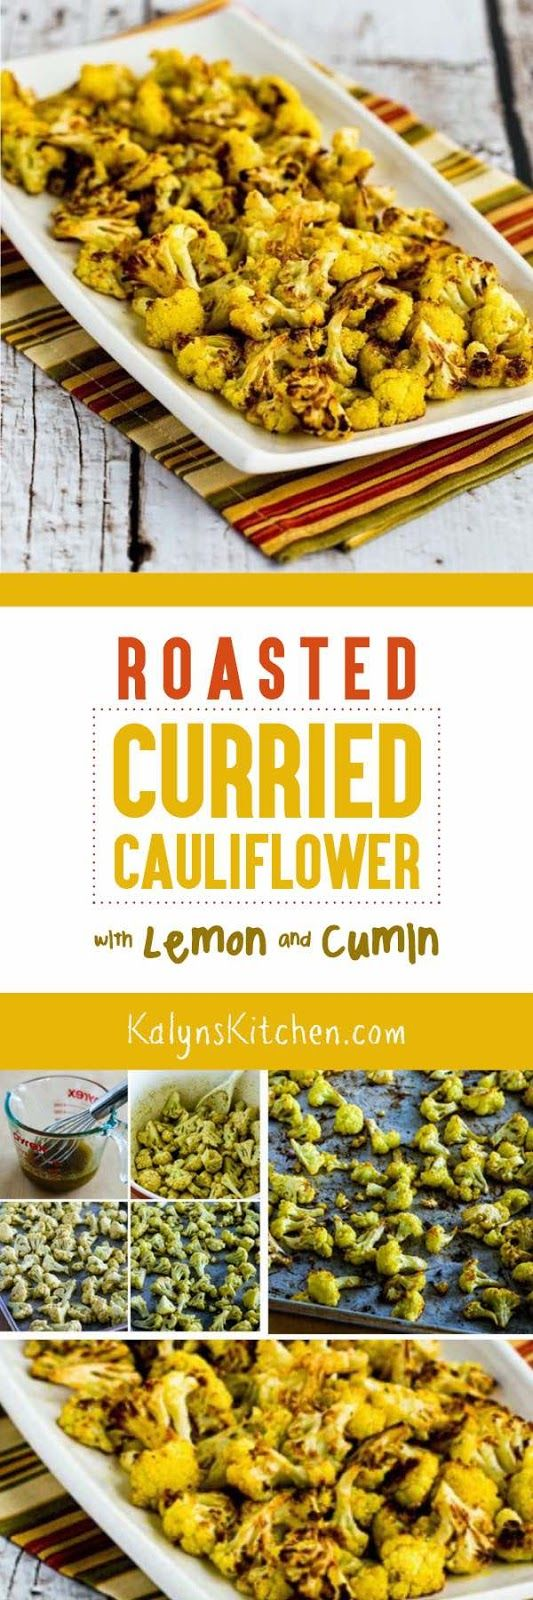 Roasted Curried Cauliflower with Lemon and Cumin found on KalynsKitchen.com